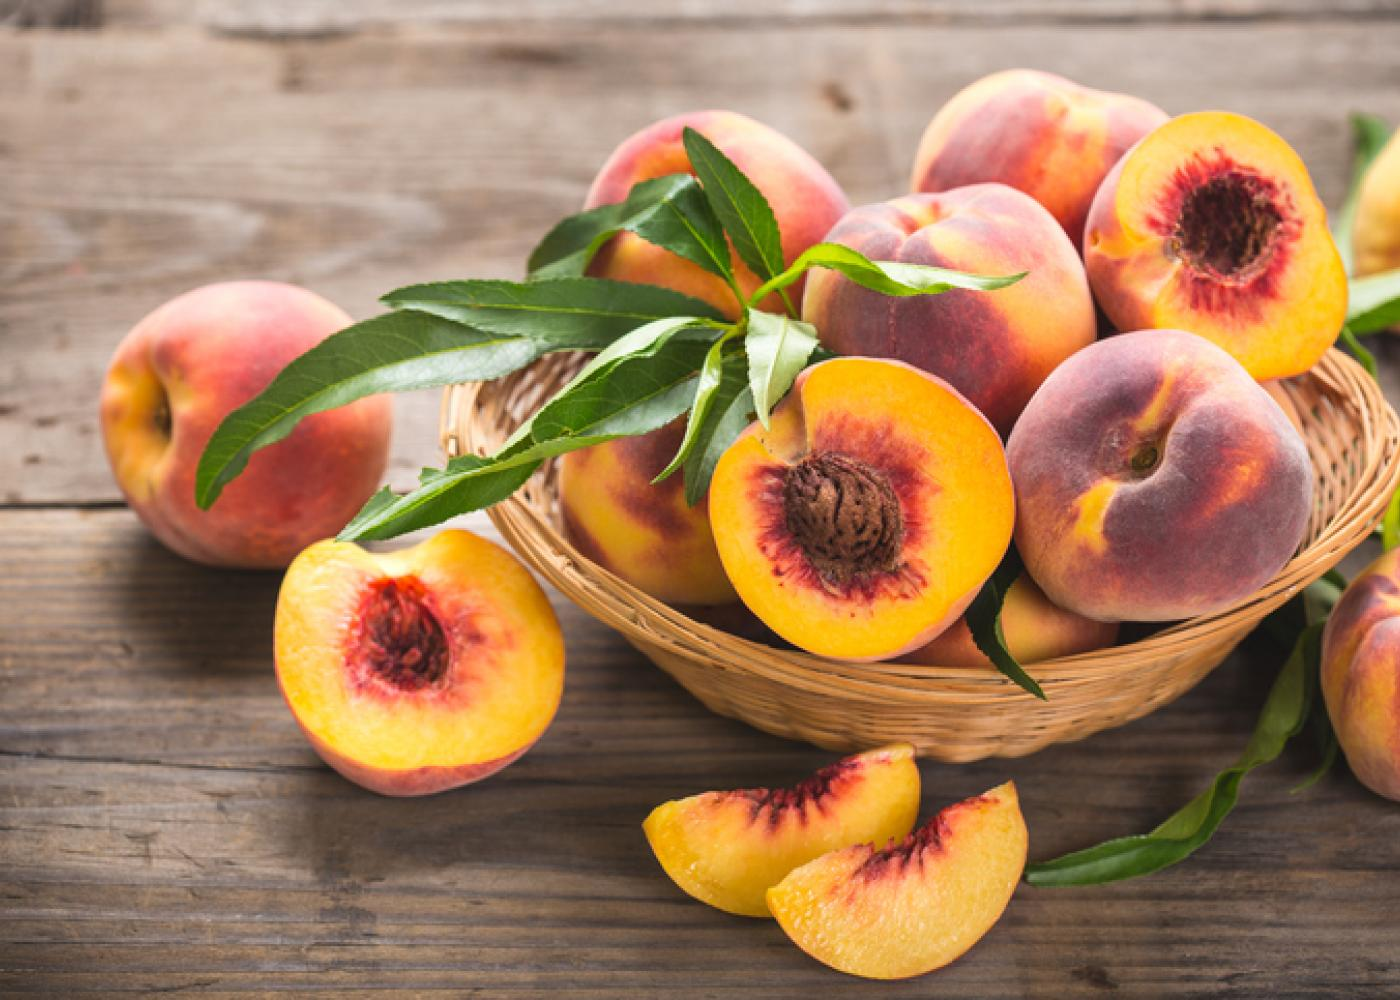 peaches with a wood background